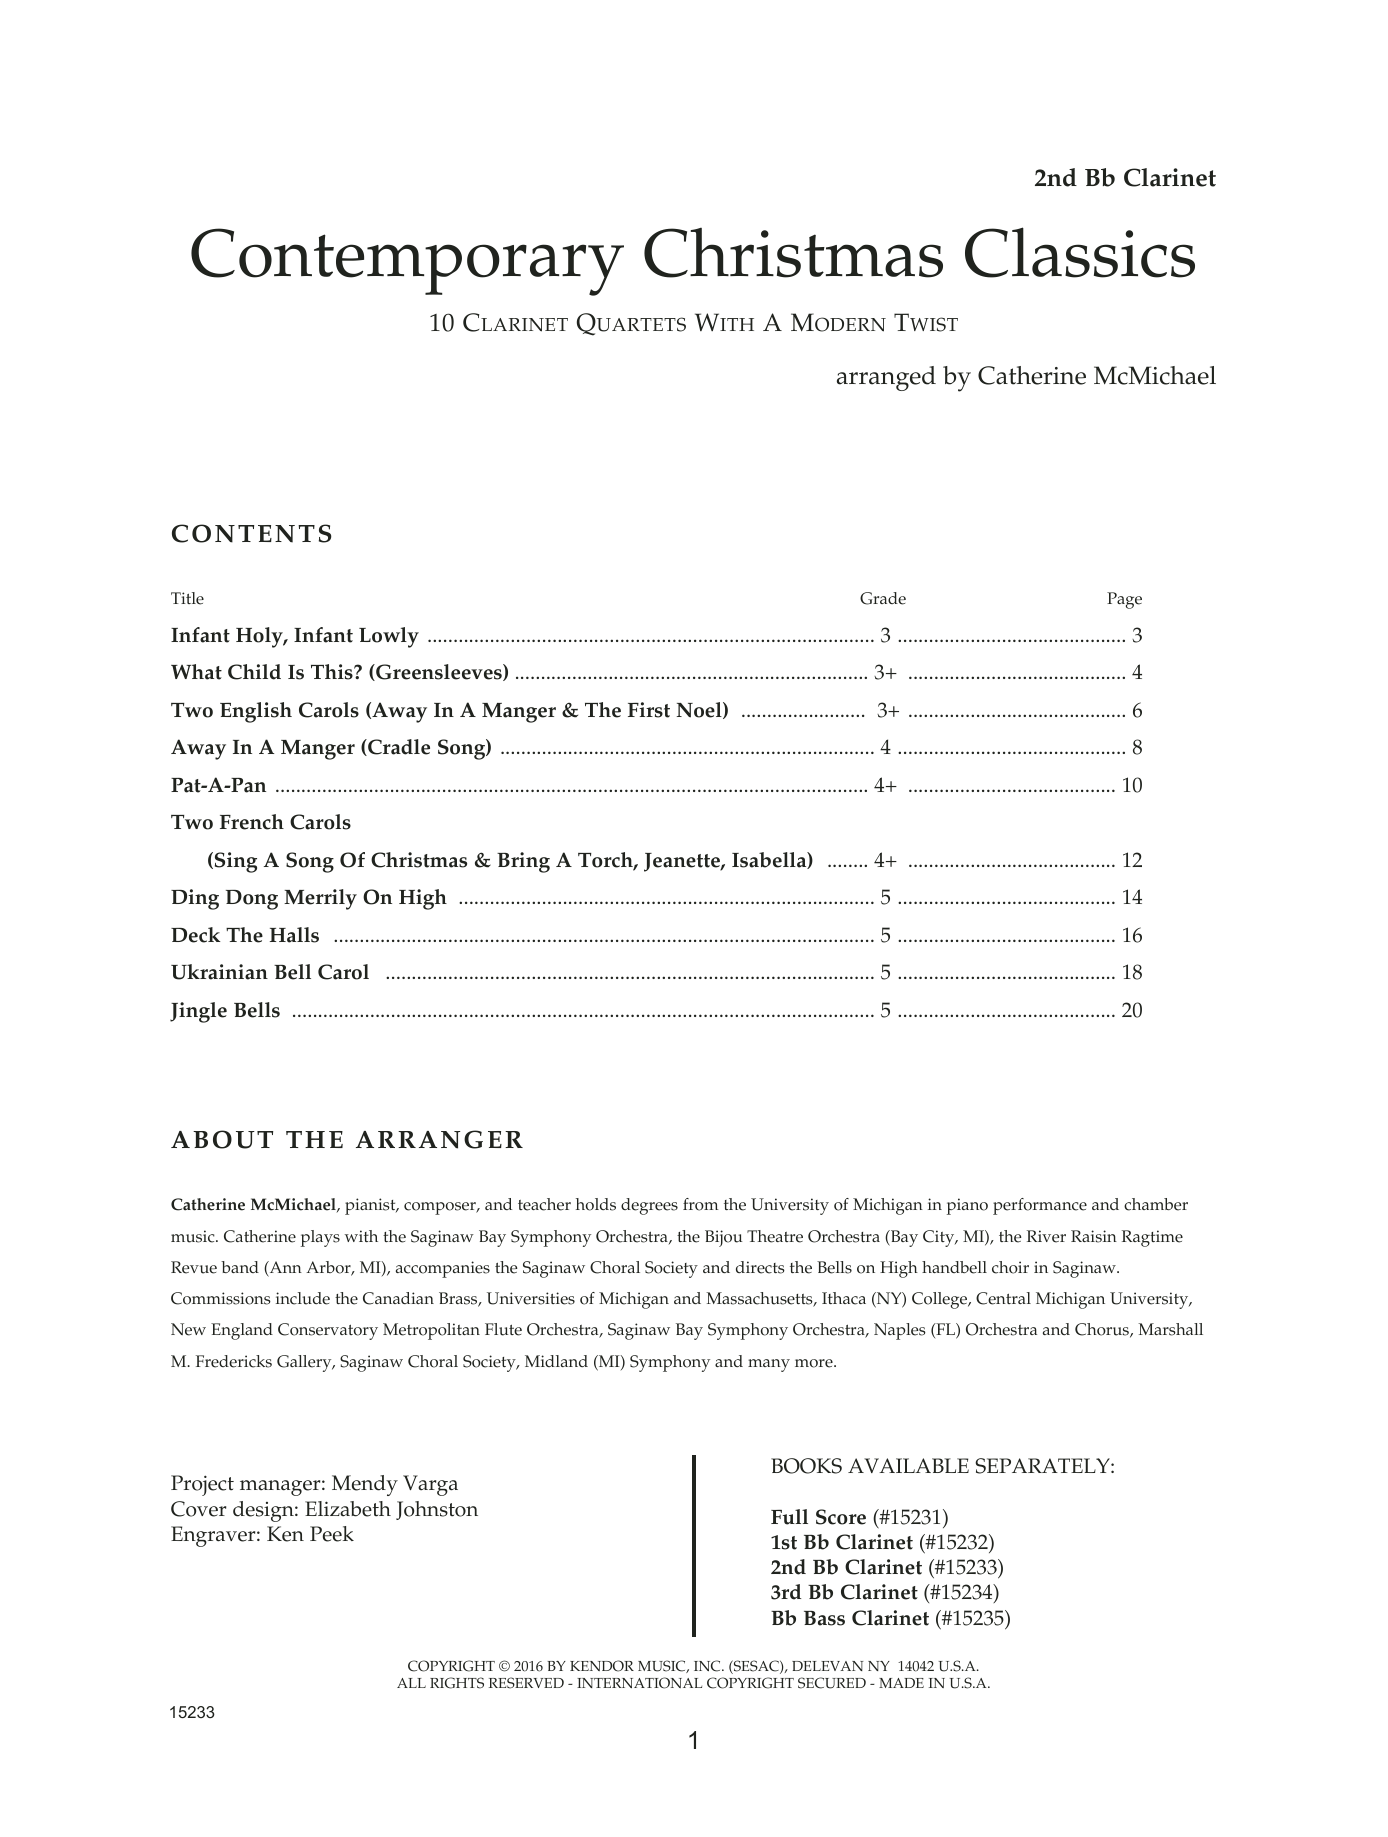 Contemporary Christmas Classics - 2nd Bb Clarinet Digitale Noten